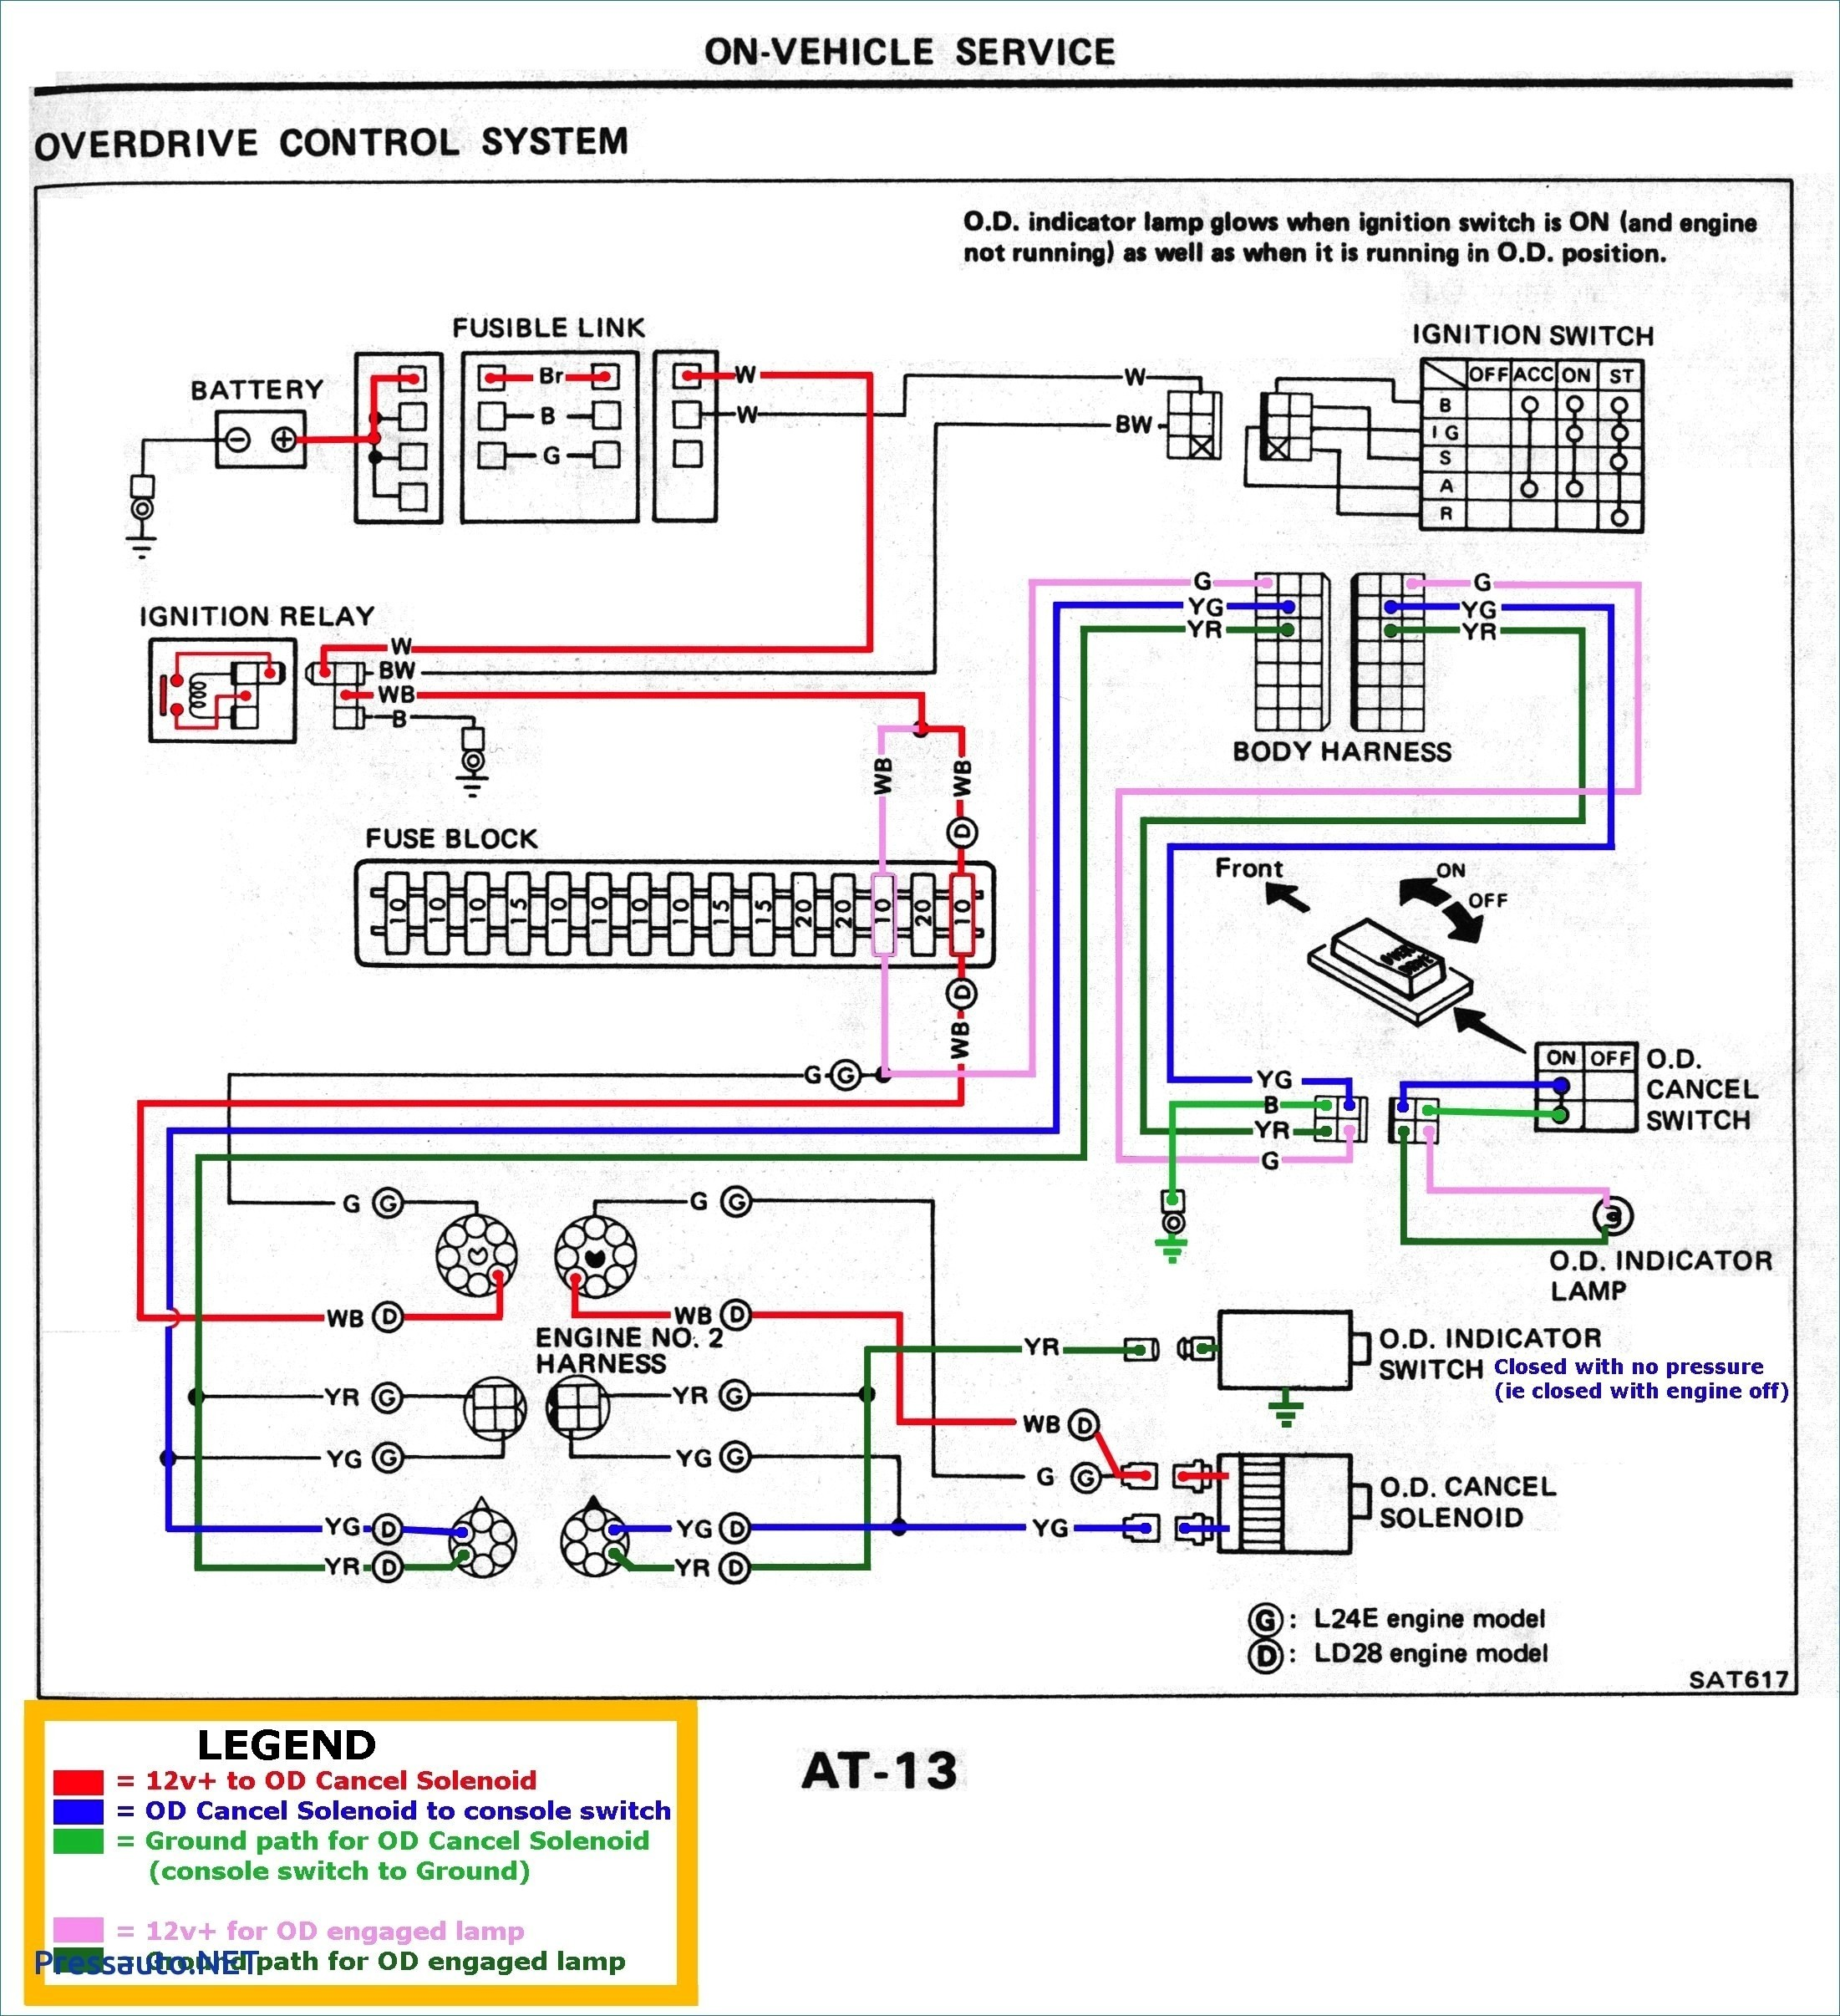 Wiring Diagram for Frigidaire Refrigerator Insignia Stereo Wiring Harness Diagram Wiring Diagram Home